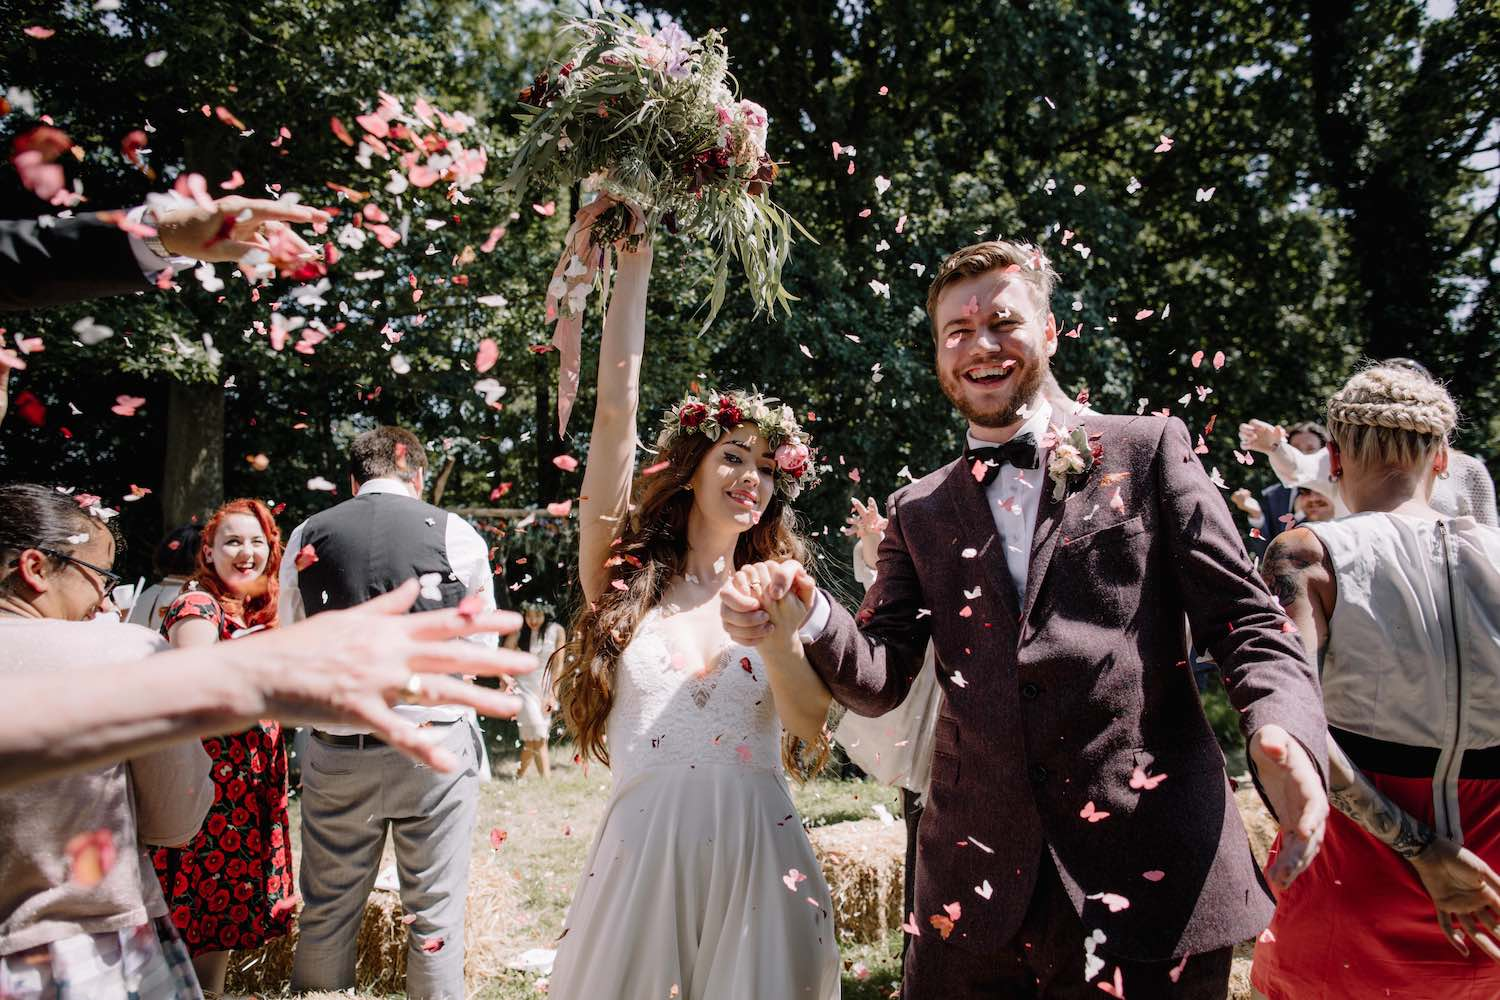 Couple cheering with confetti after woodland ceremony